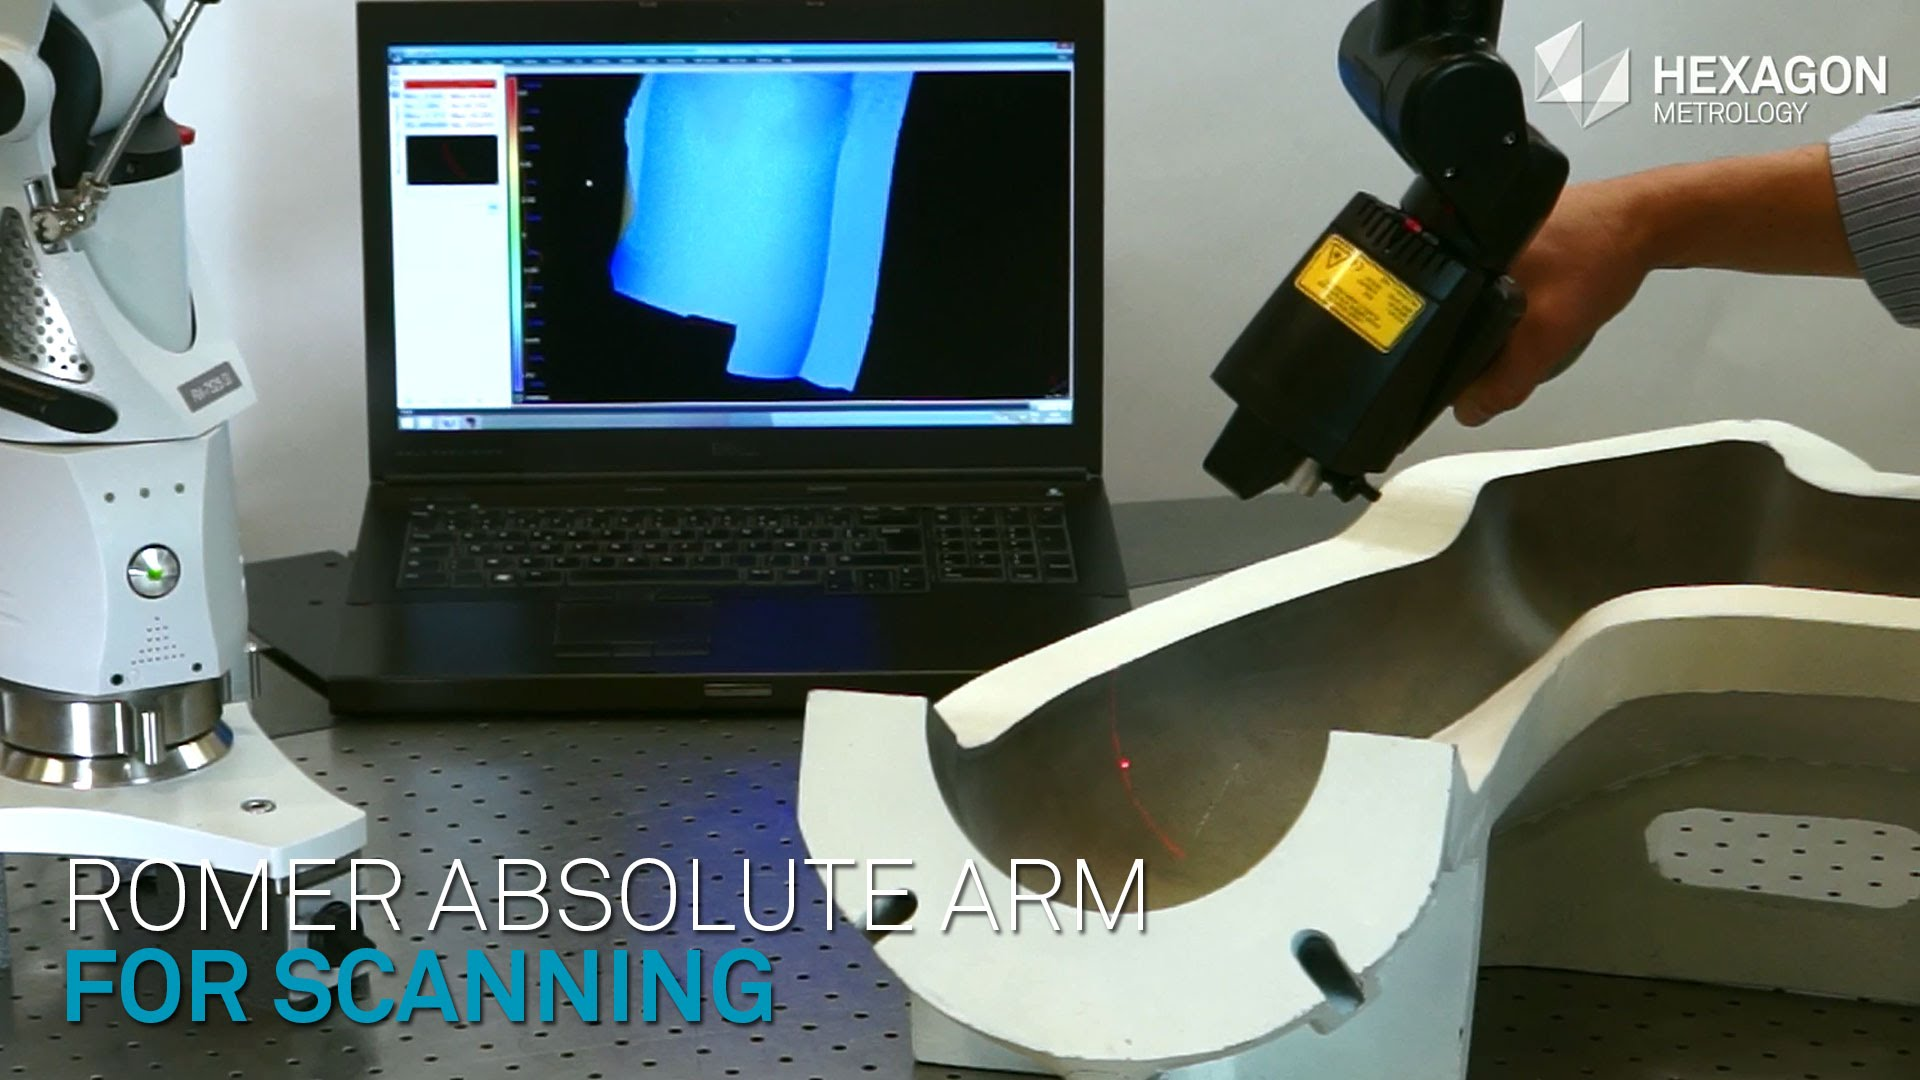 ALL TYPE OF PARTS OUTER SURFACE SCAN & COMPARE WITH MODEL, AND REVERSE ENGINEERING